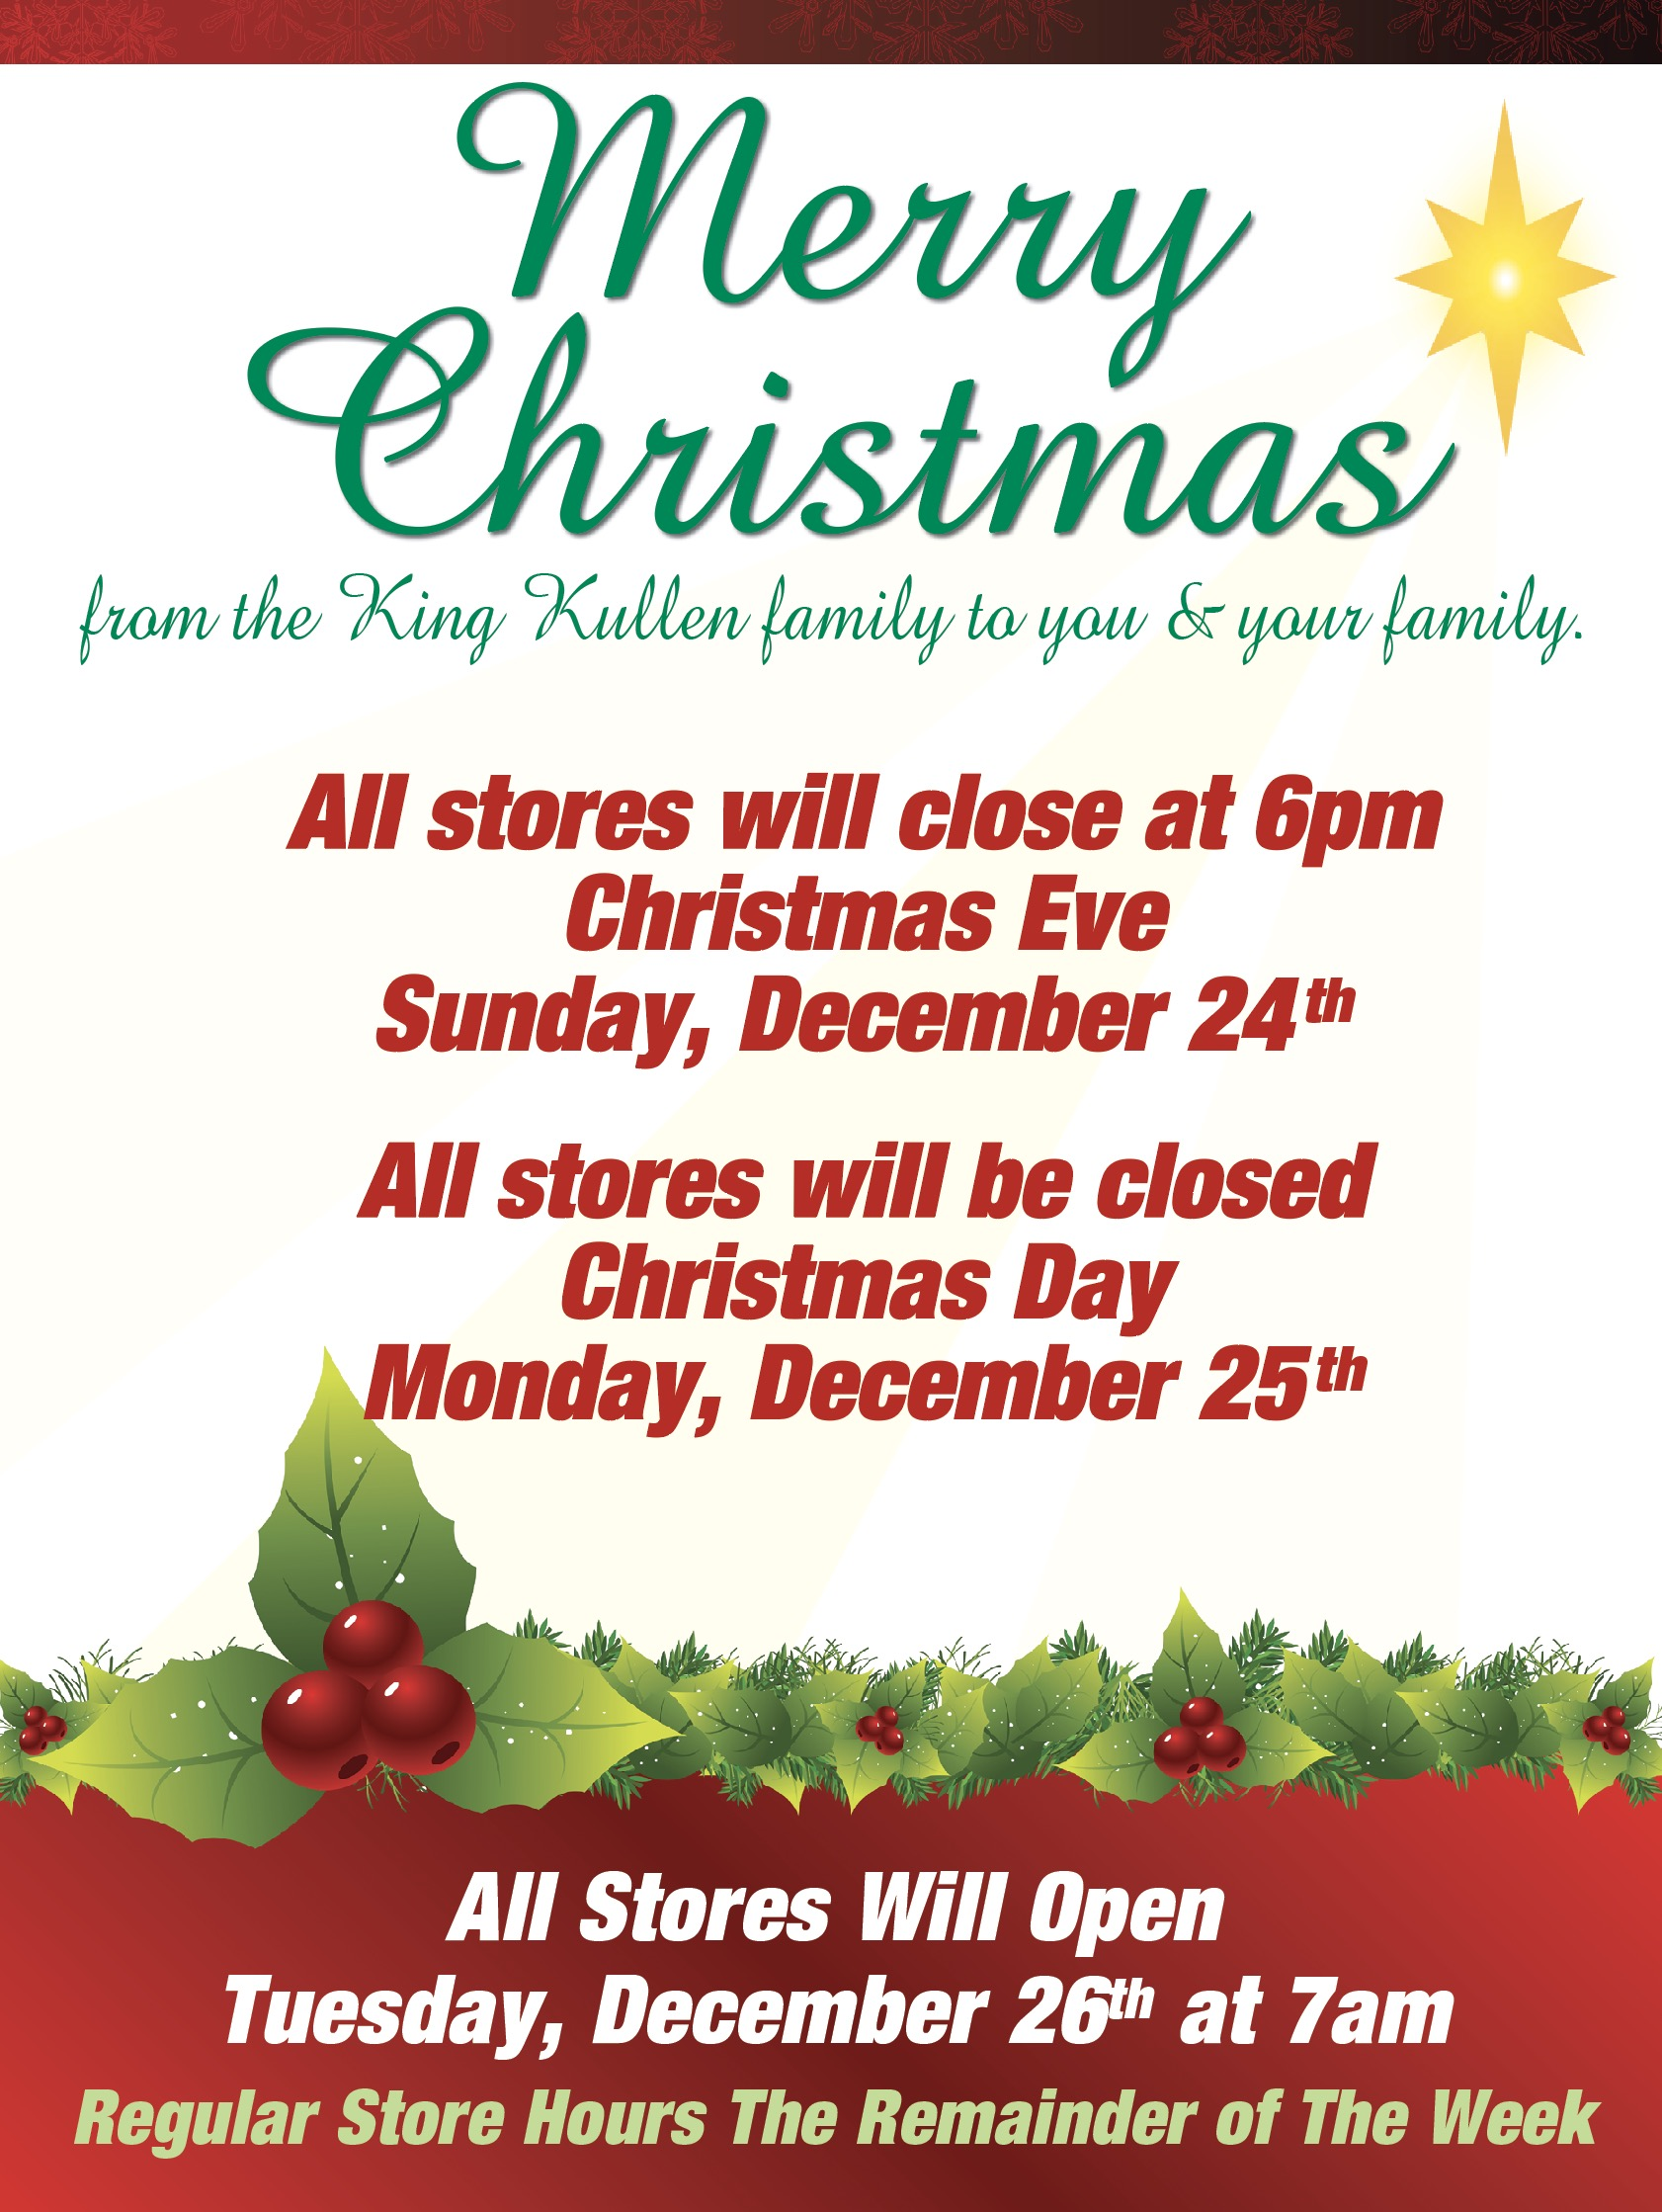 all stores will re open on tuesday december 26th at 7am - What Stores Will Be Open Christmas Day